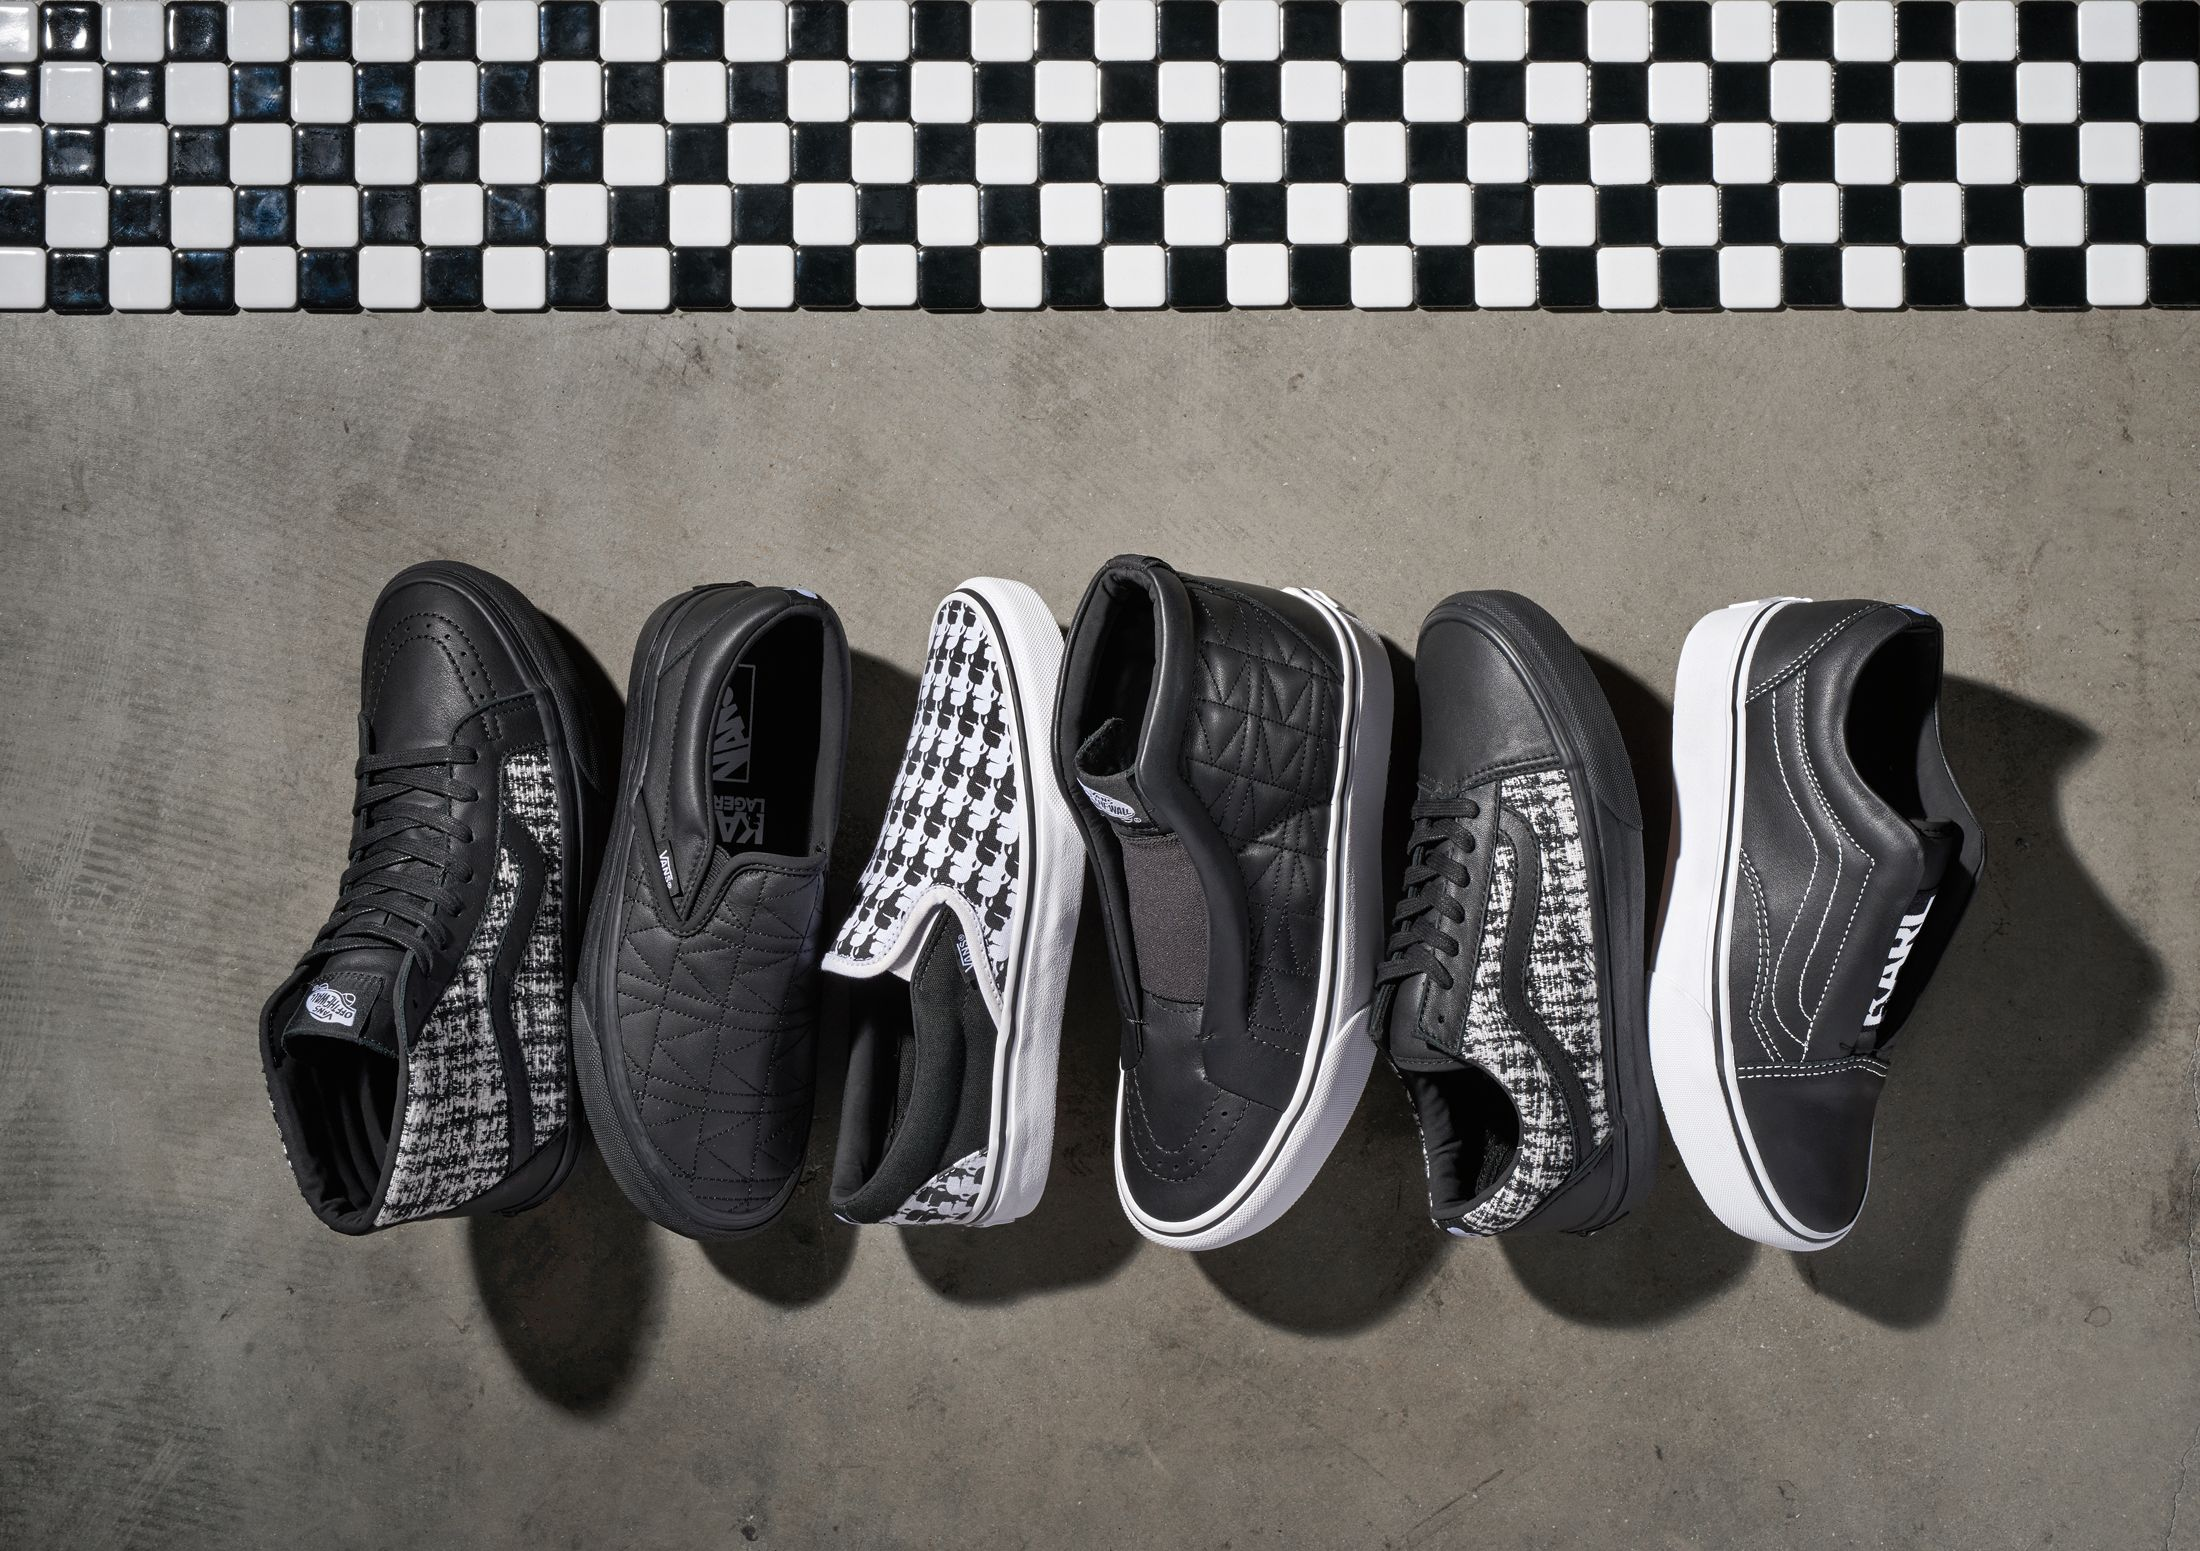 74022a7cc1 First Look at Vans x Karl Lagerfeld Collab - Vans x Karl Lagerfeld  Collection Photos